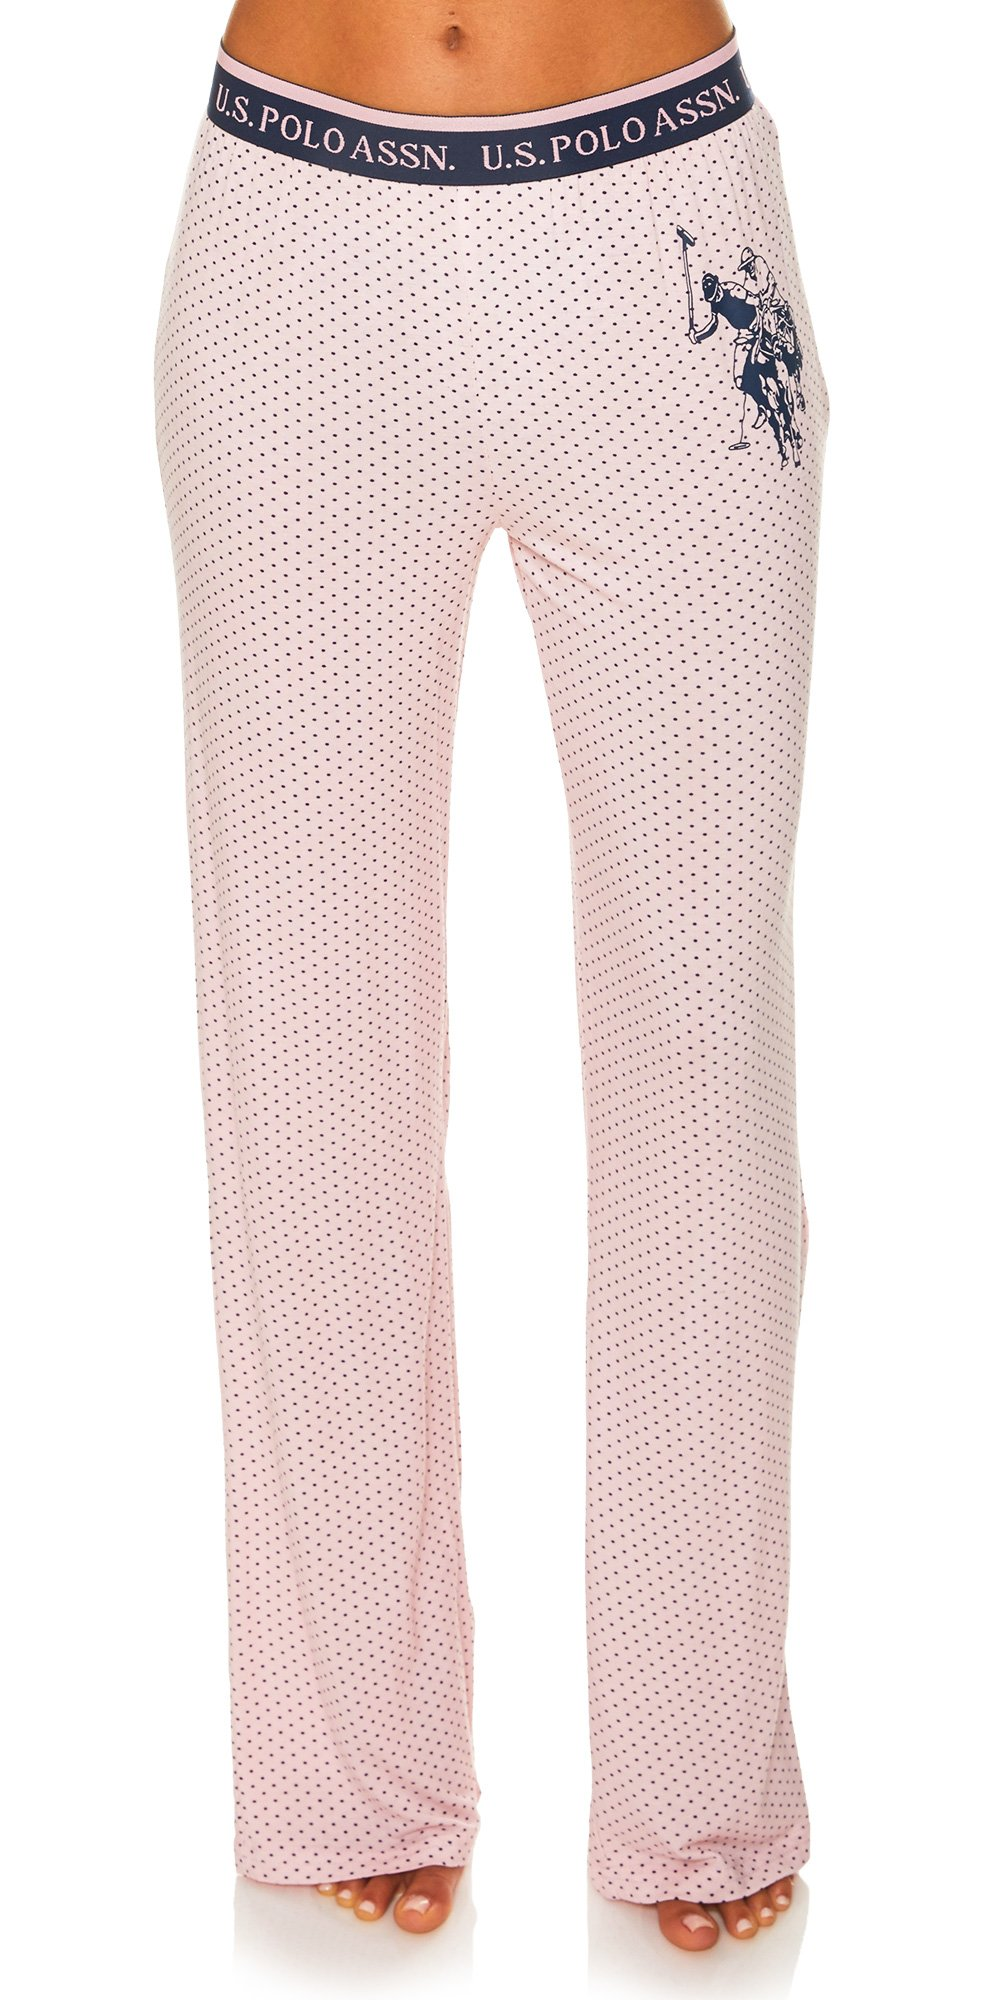 U.S. Polo Assn.. Women's Pajama Sleepwear Logo Pants in Polka Dots Pink Daisy Small